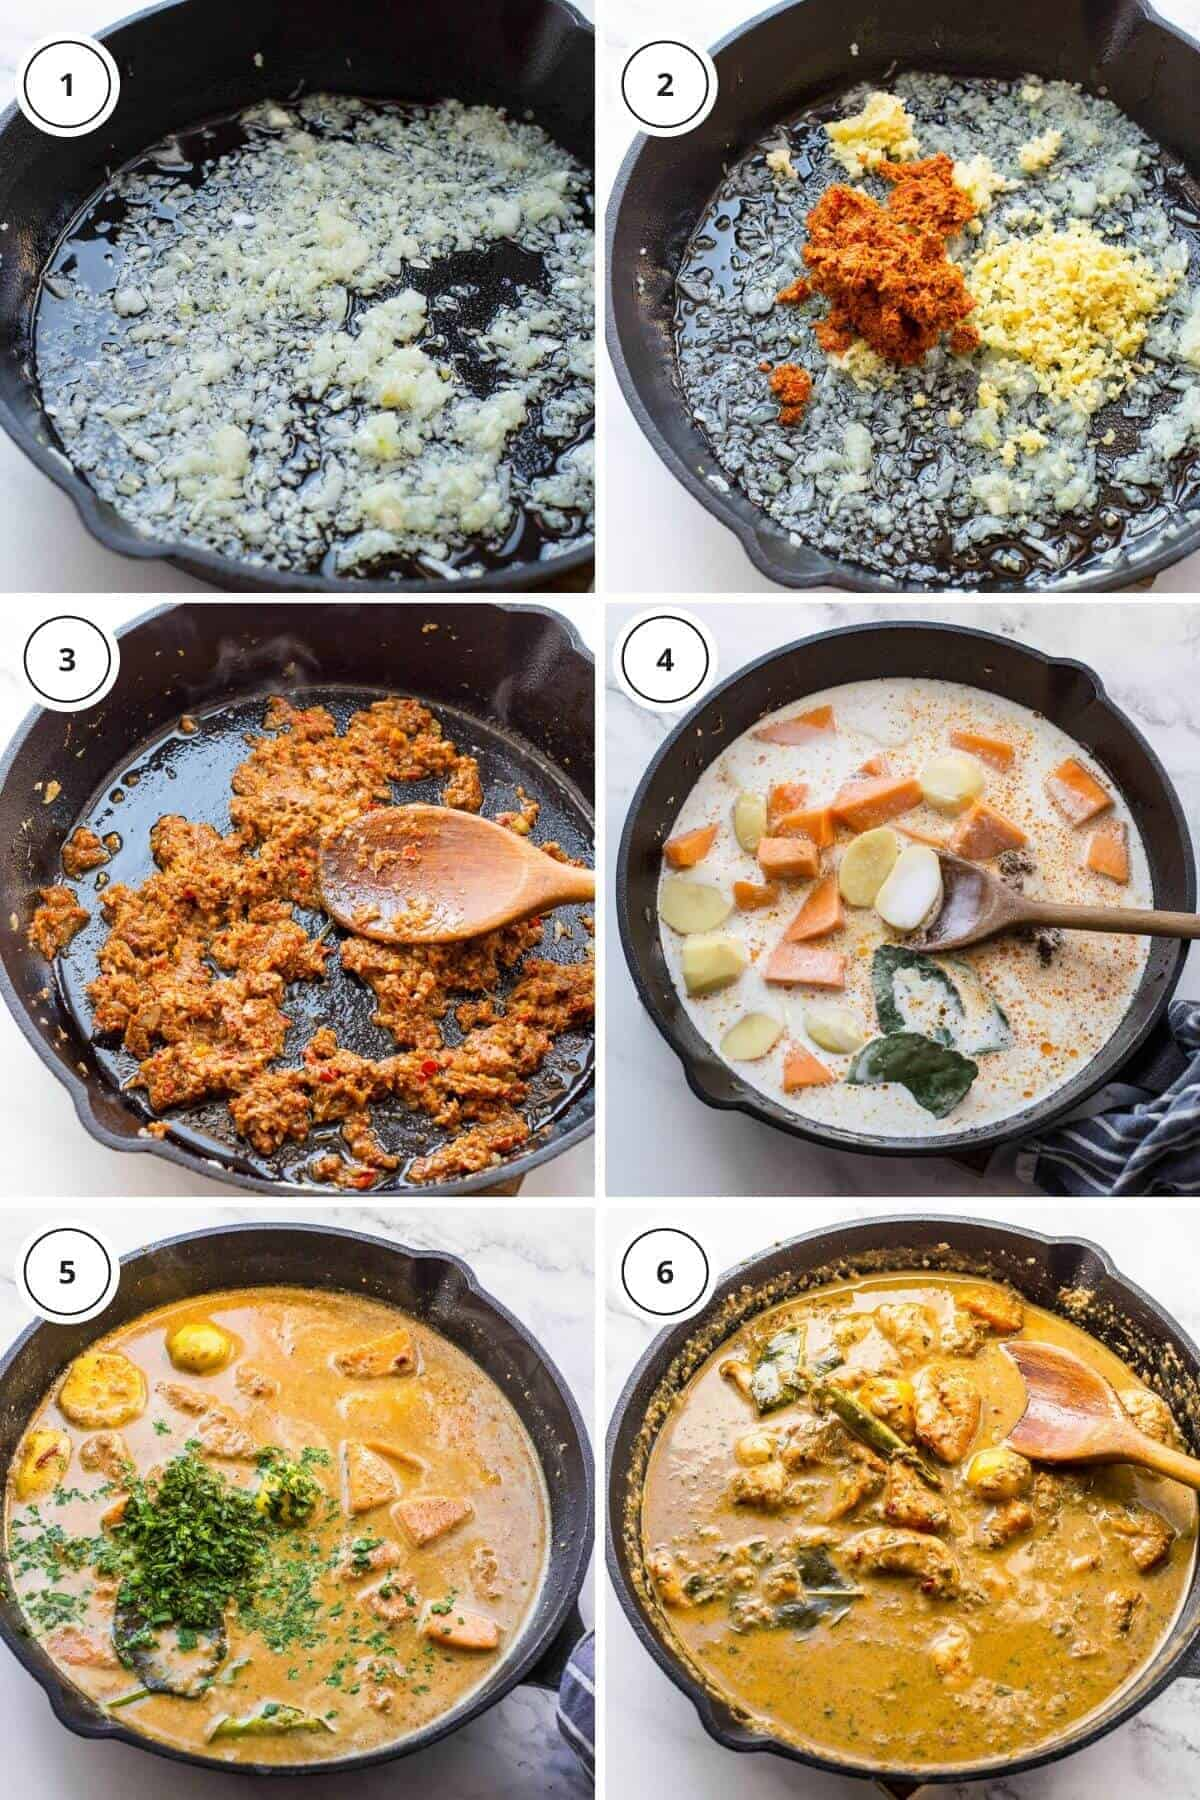 picture steps to make prawn massaman curry.